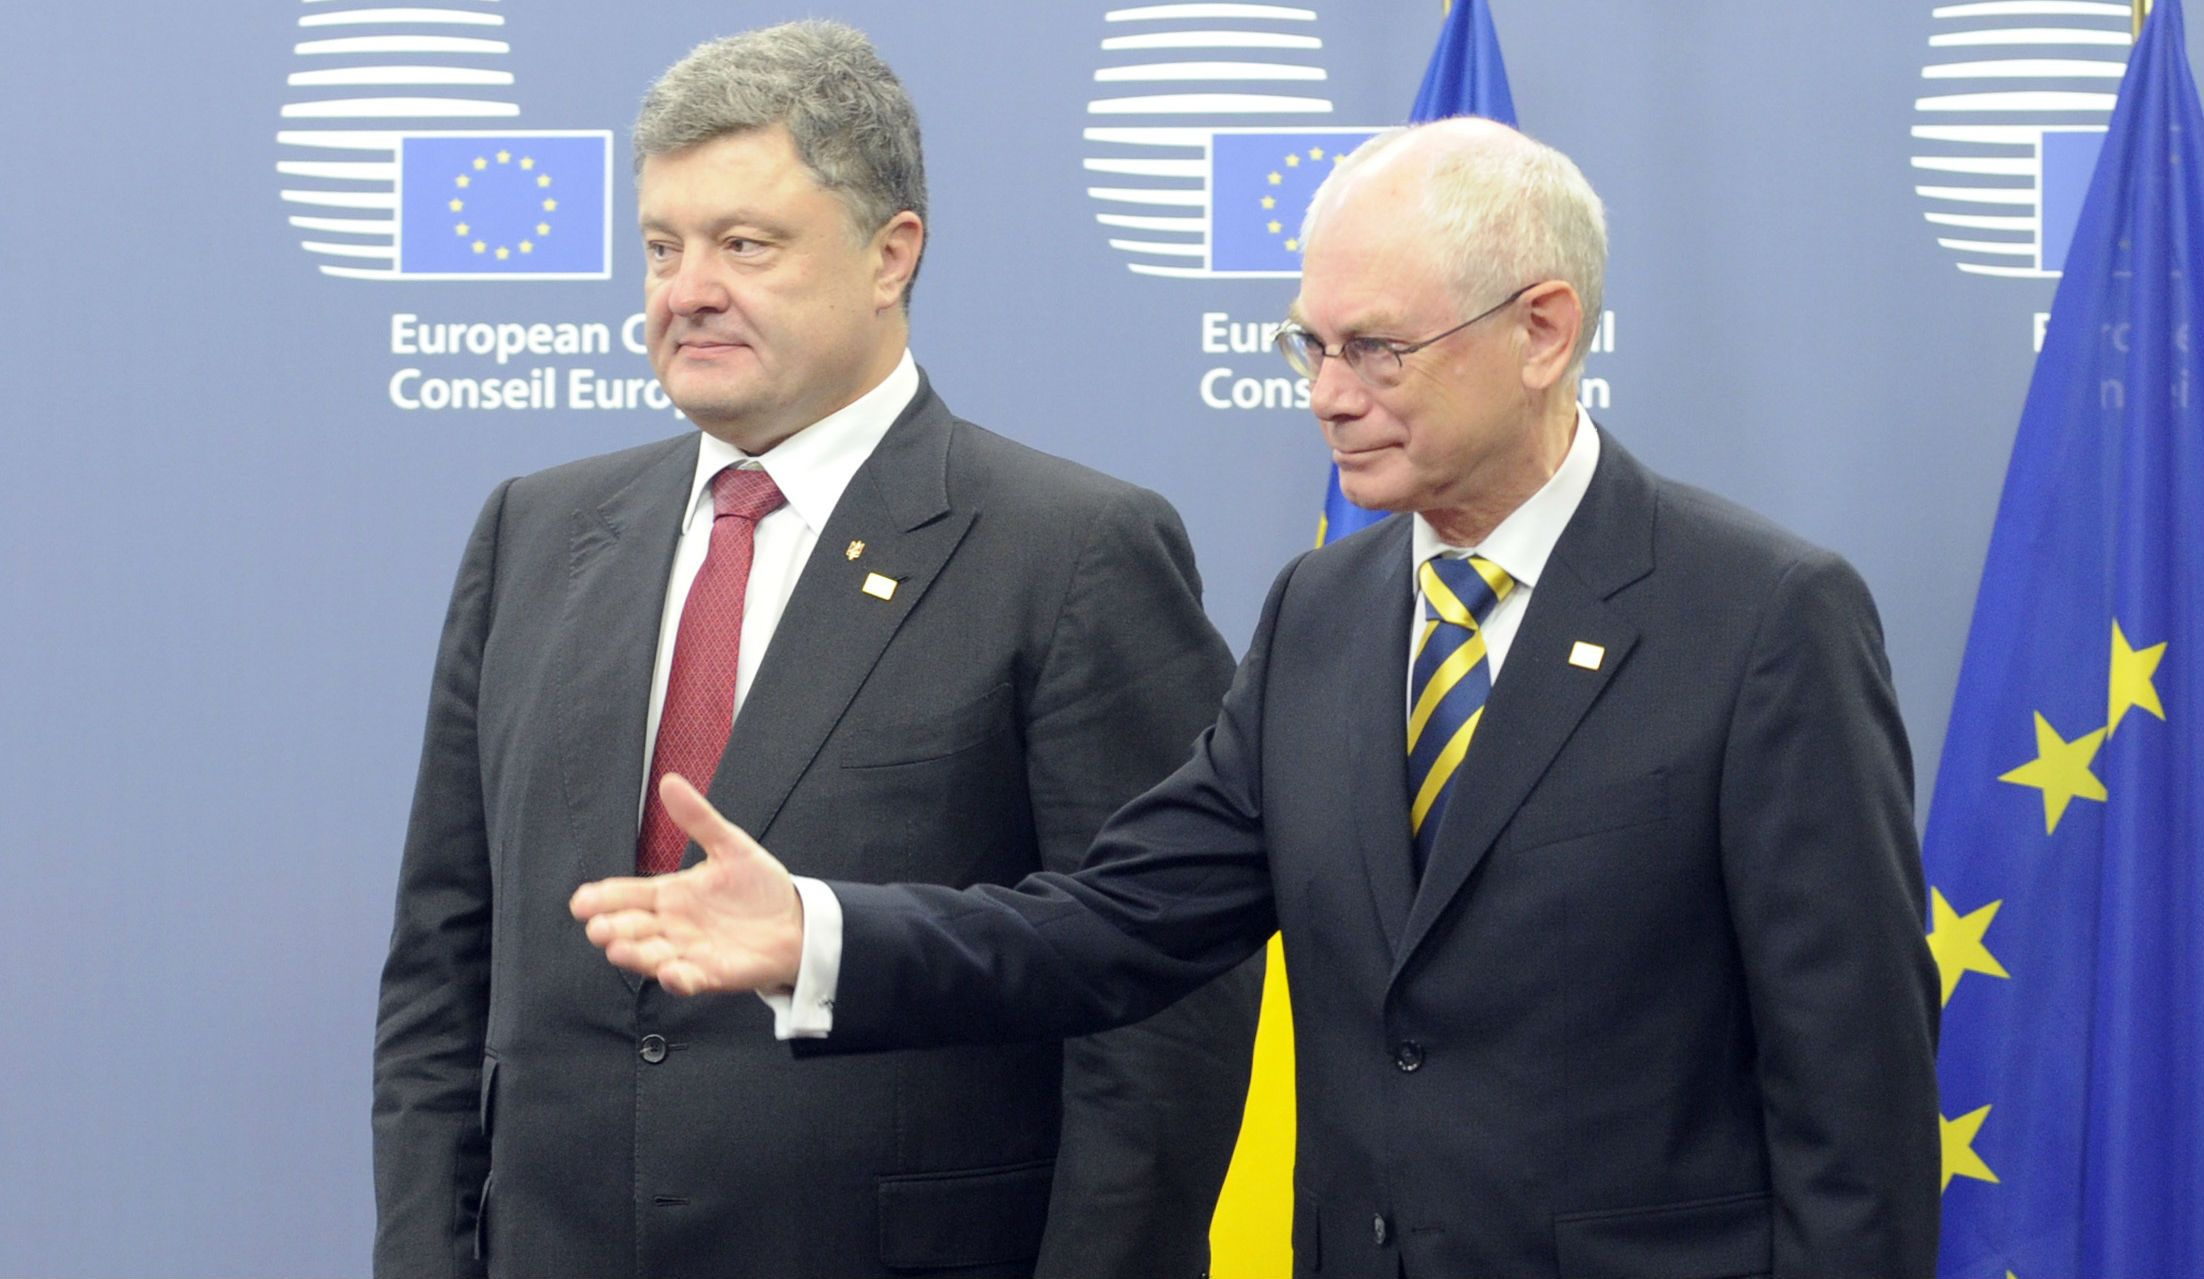 Poroshenko and Van Rompuy